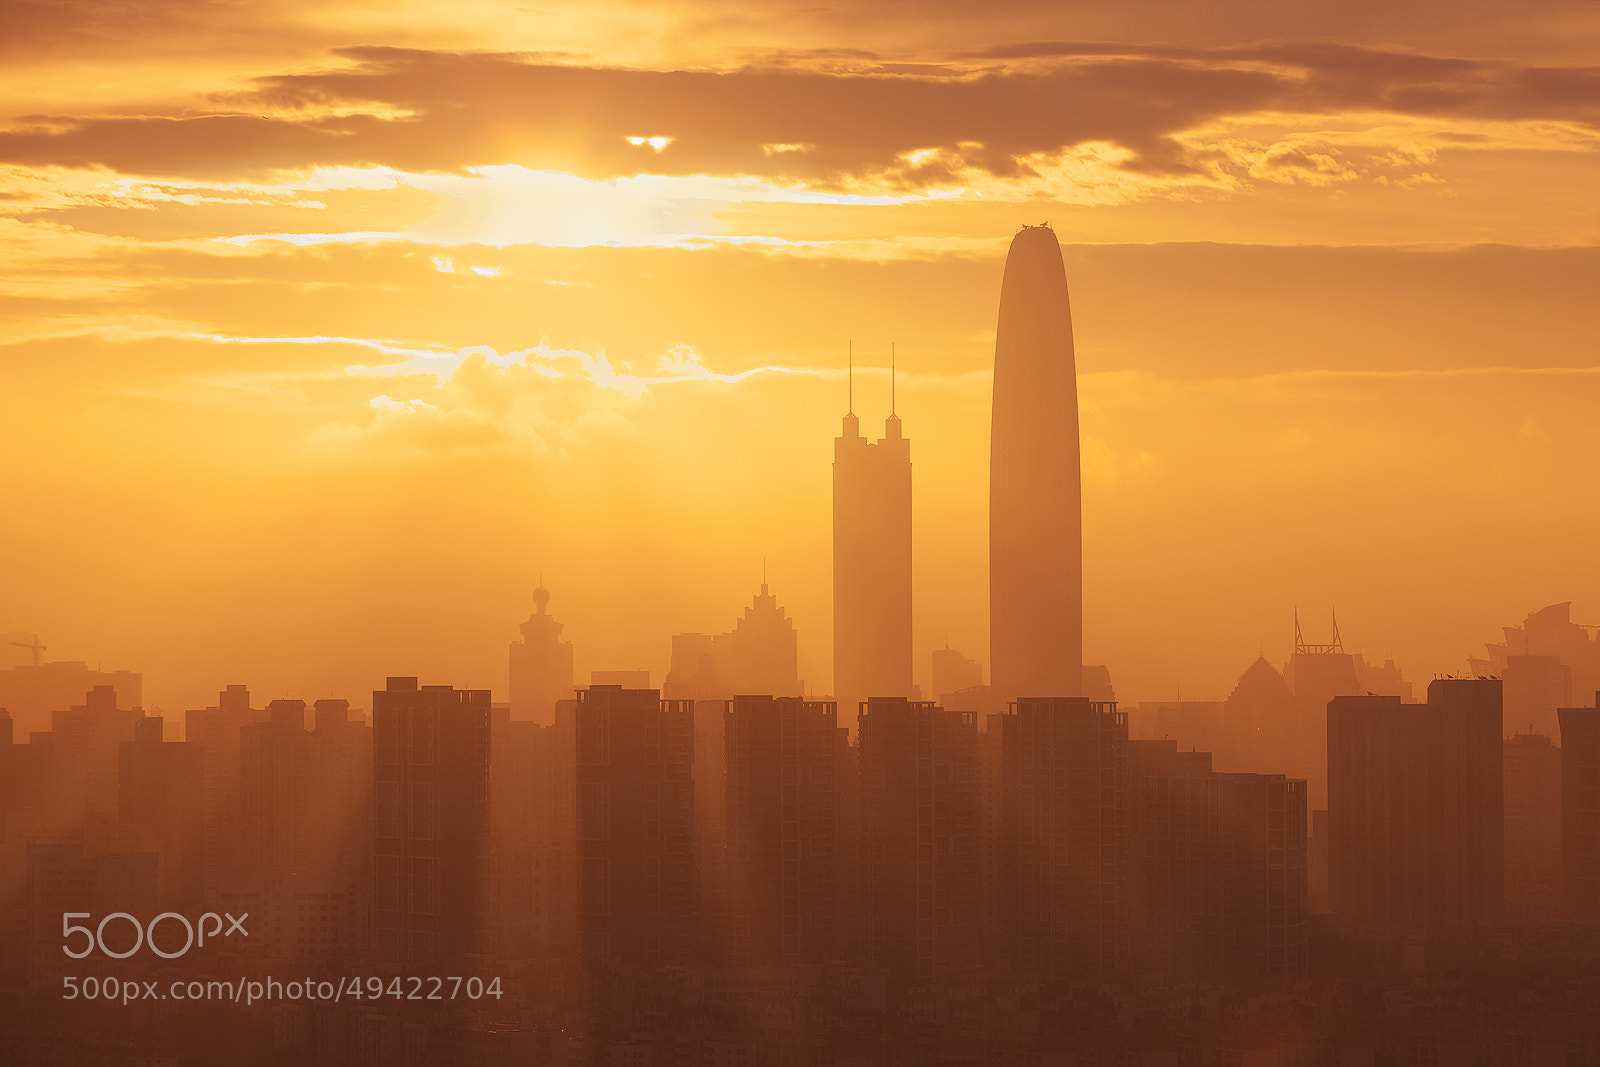 Photograph Awakening City by Carl Pan on 500px